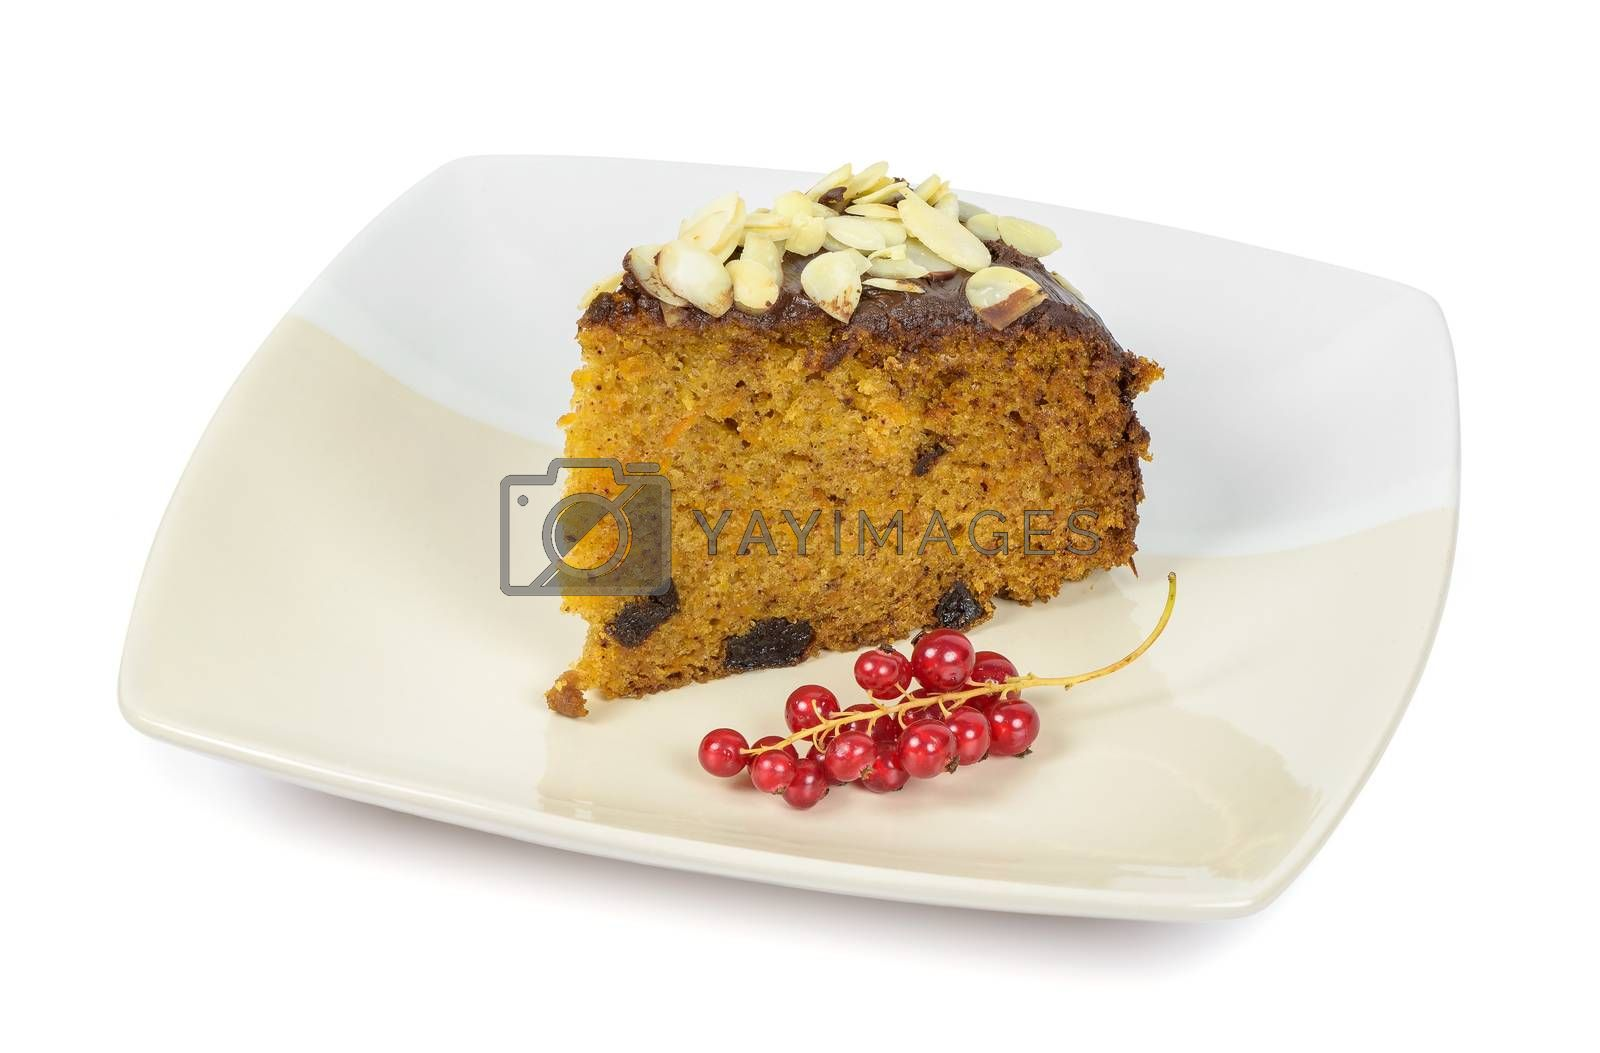 Carrot cake with almond flakes and red currant on a plate isolated on white background with clipping path